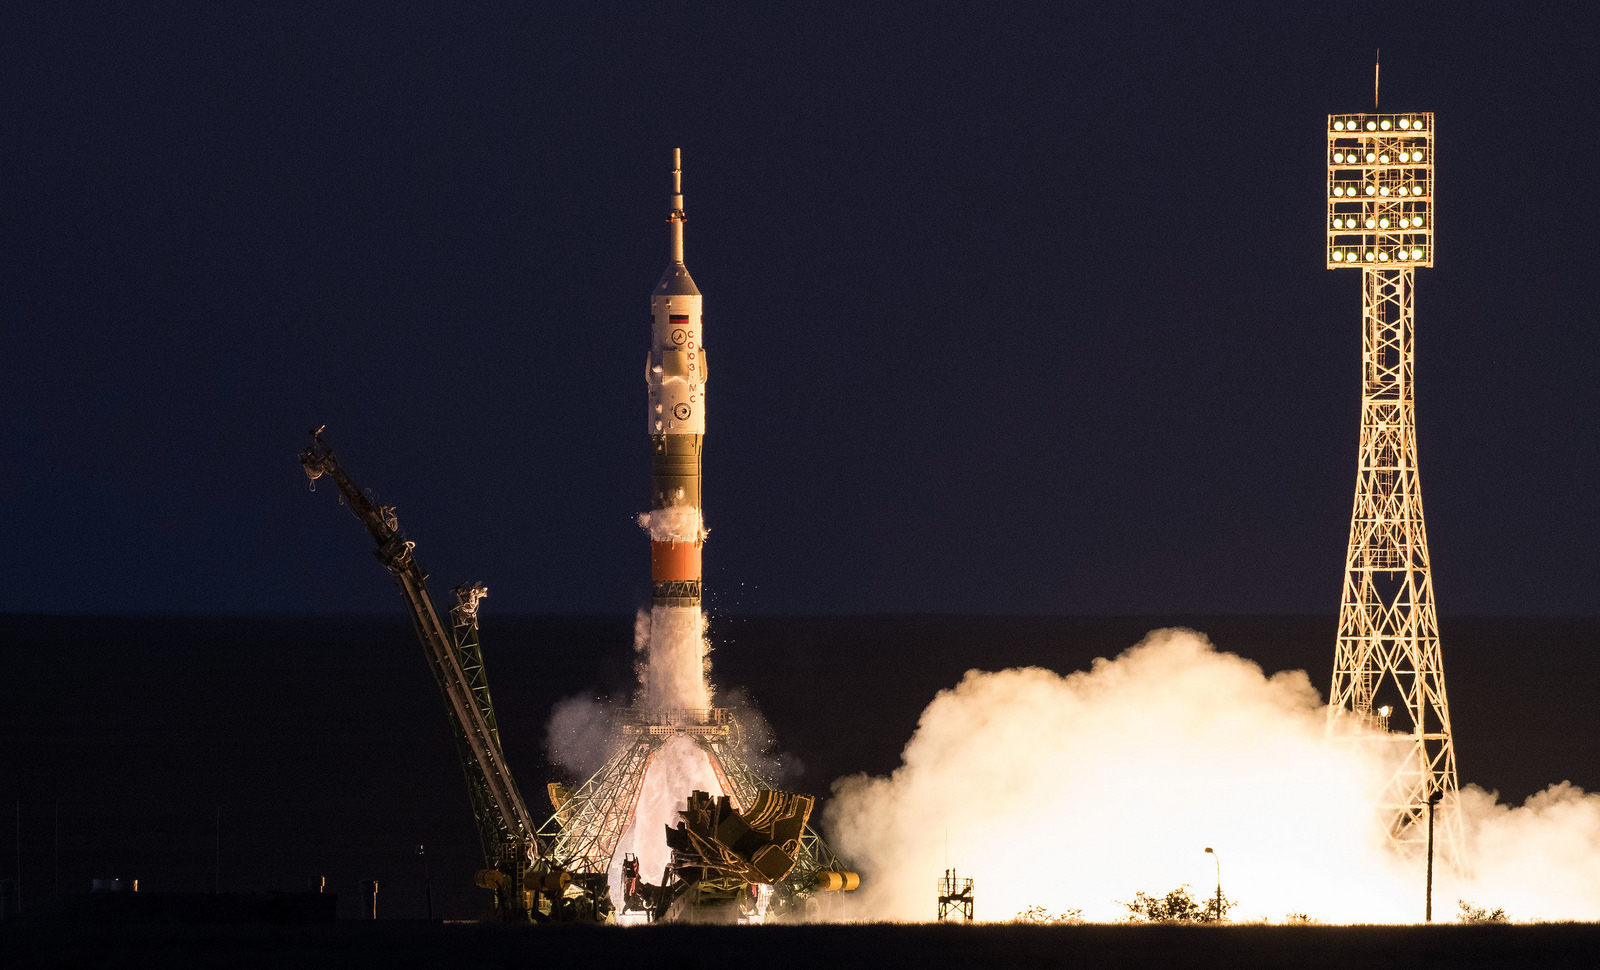 The Soyuz MS-05 rocket is launched with Expedition 52